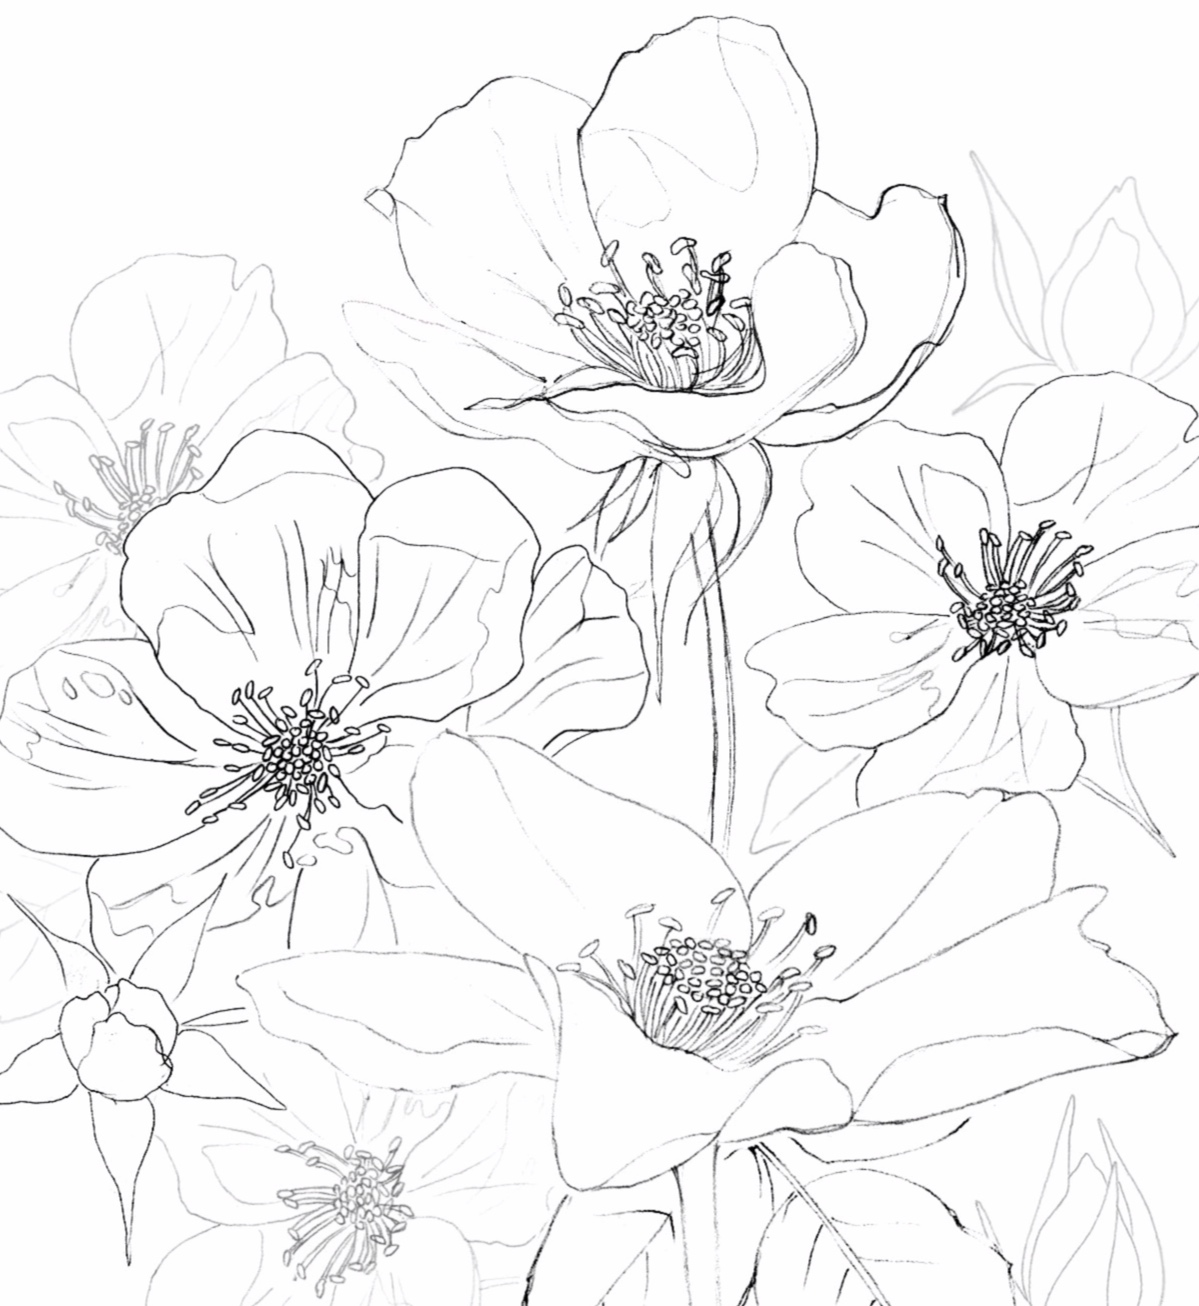 Motif sketches for Ink Flower Collection  © 2019 Cory Deibert